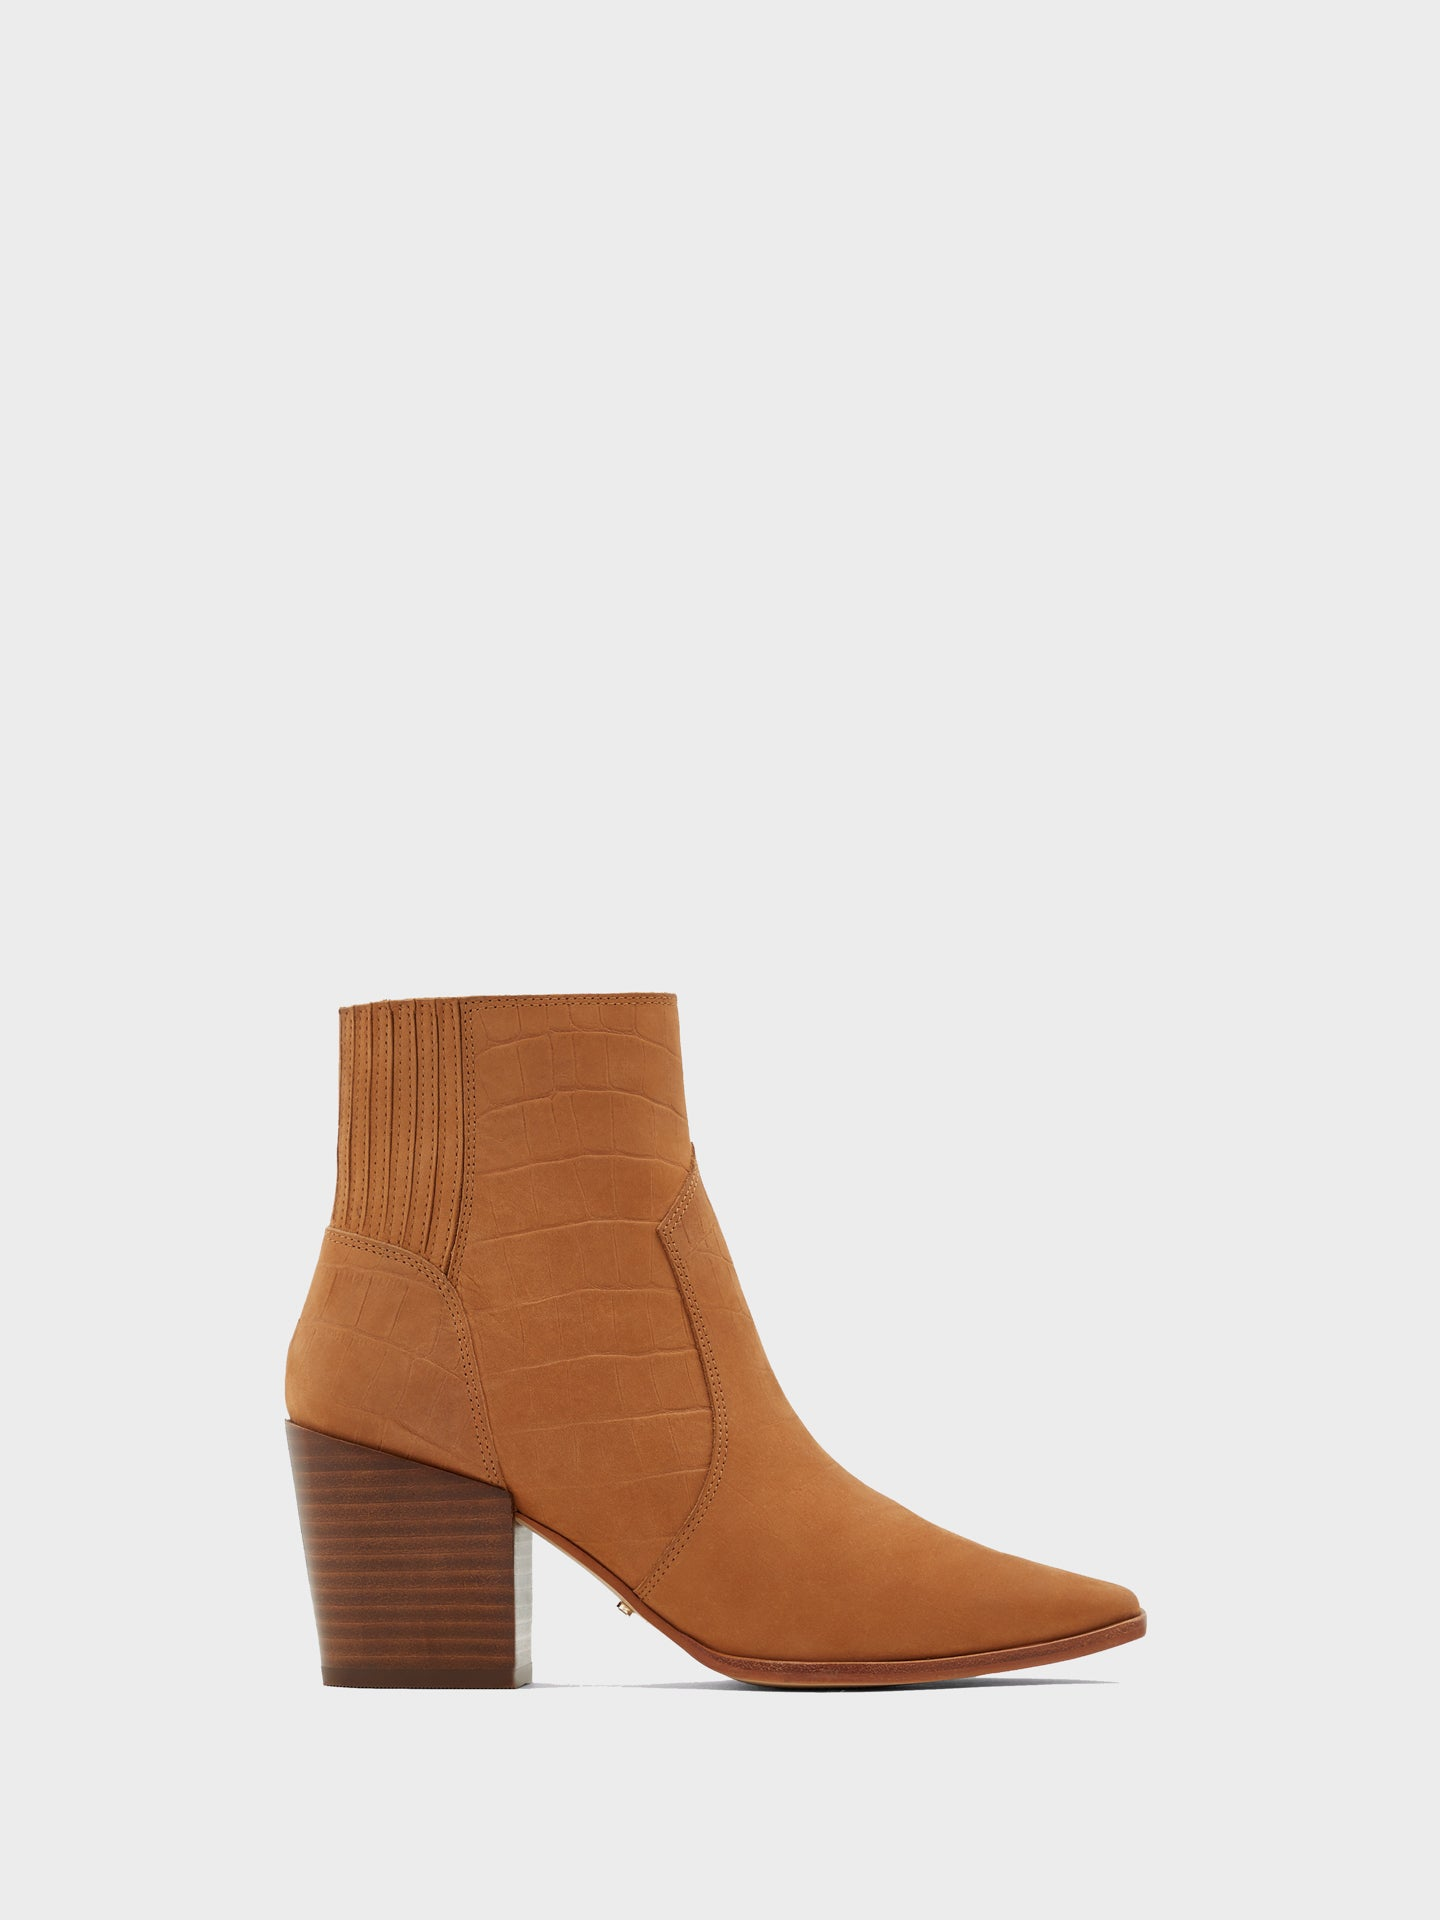 Aldo Brown Pointed Toe Ankle Boots